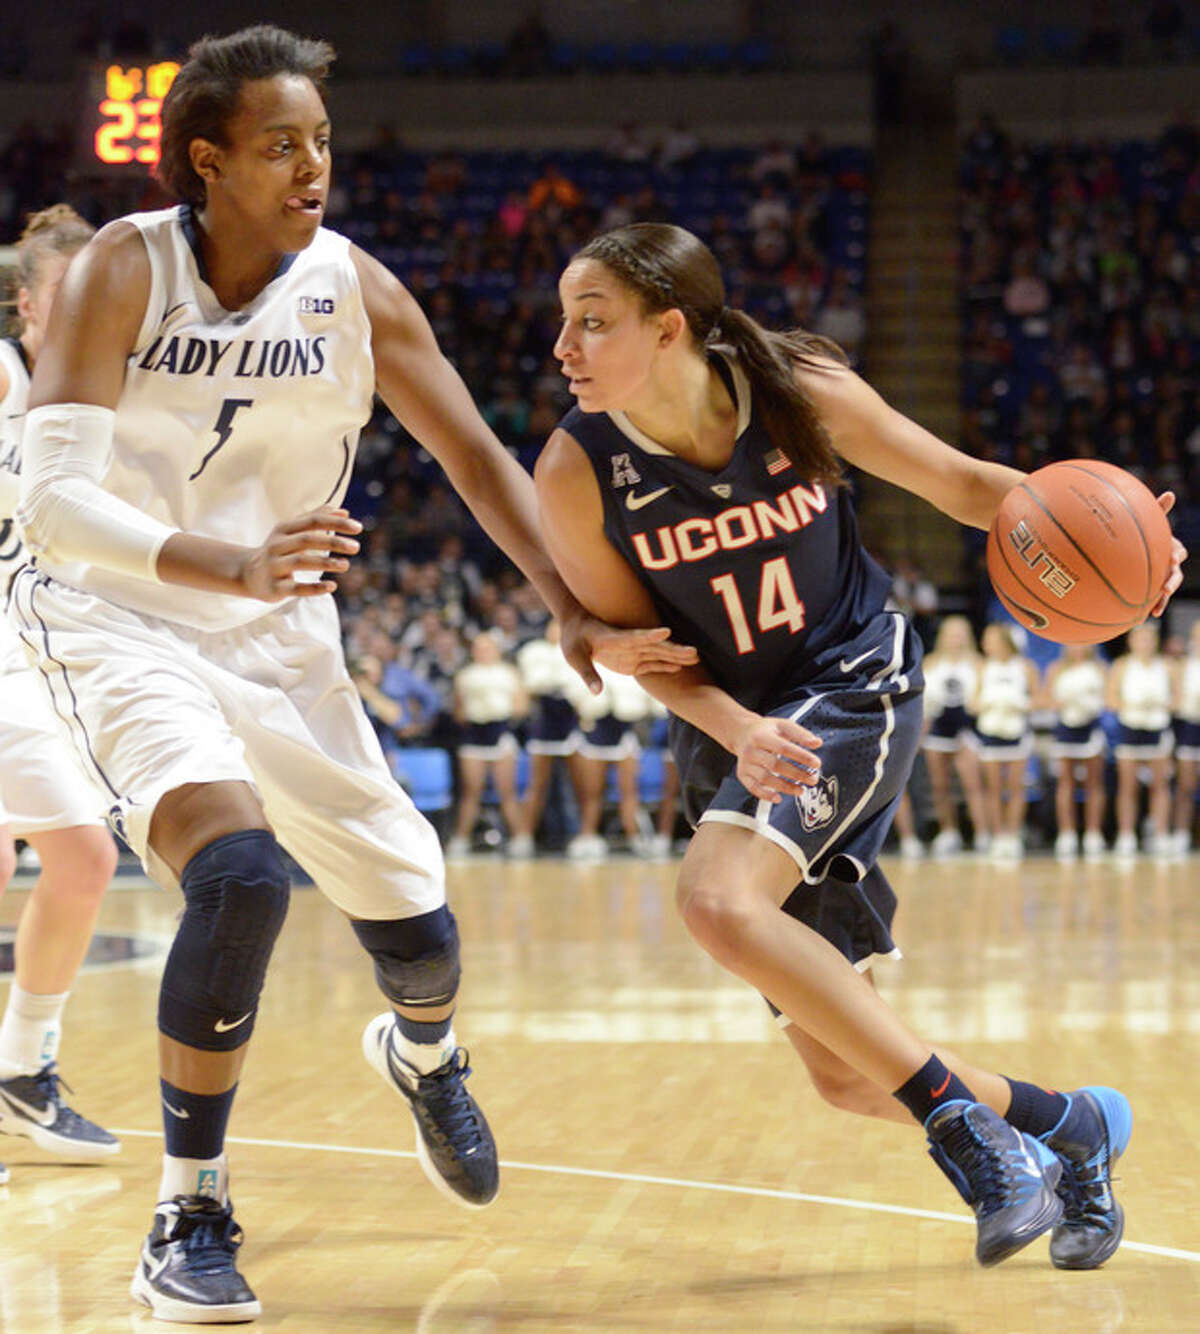 Connecticut's Bria Hartley (14) drives to the basket past Penn State's Talia East (5) in the first half of an NCAA college basketball game on Sunday, Nov. 17, 2013, in State College, Pa. Hartley had 29 points in Connecticut's 71-52 victory over Penn State. (AP Photo/John Beale)